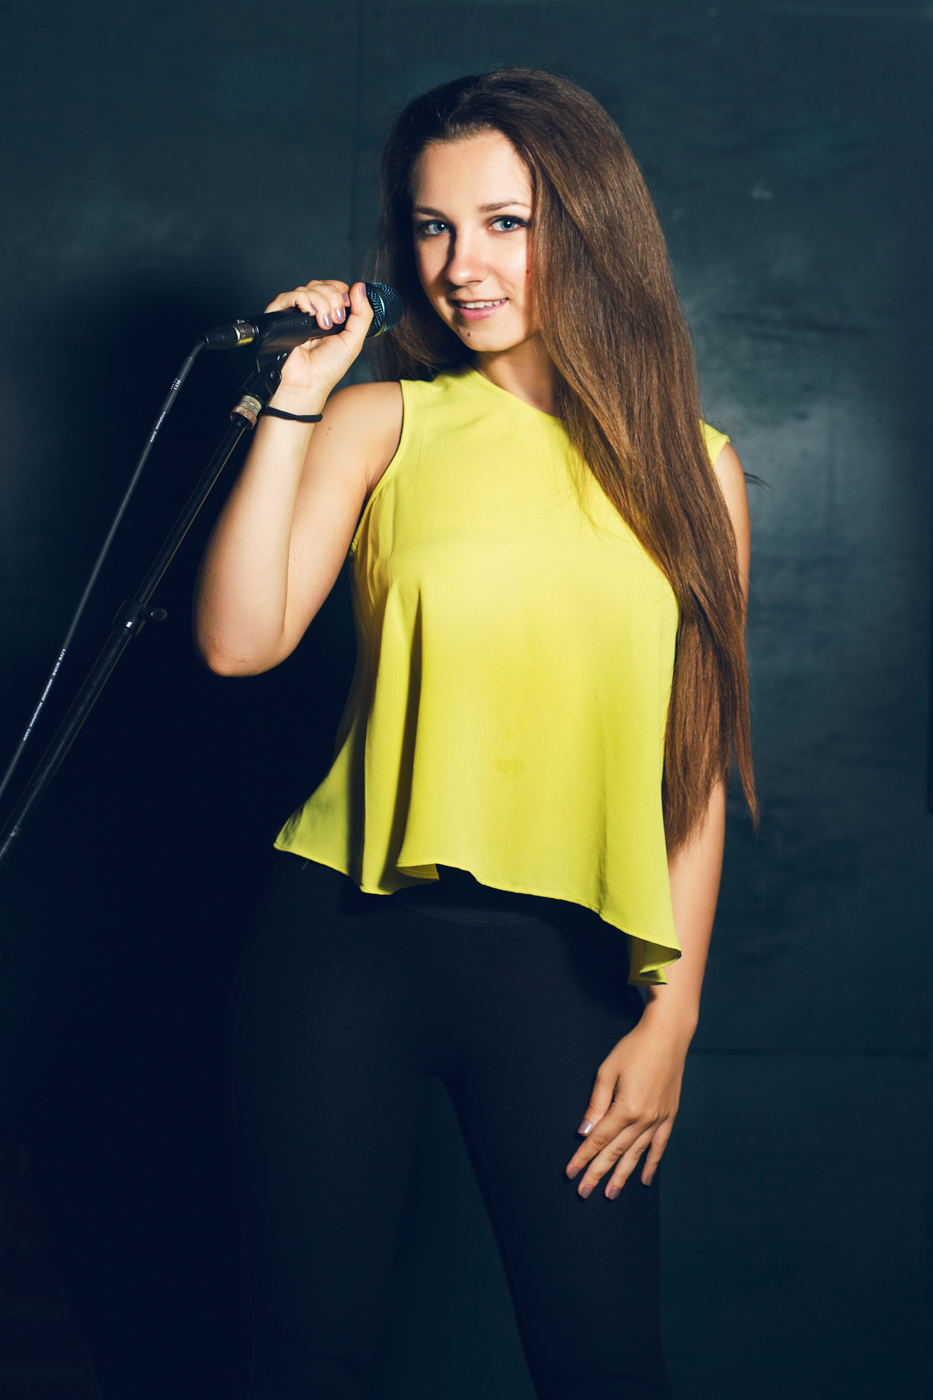 Photo-Shoot-for-a-local-band-Ksenia-Pro-Photography-1